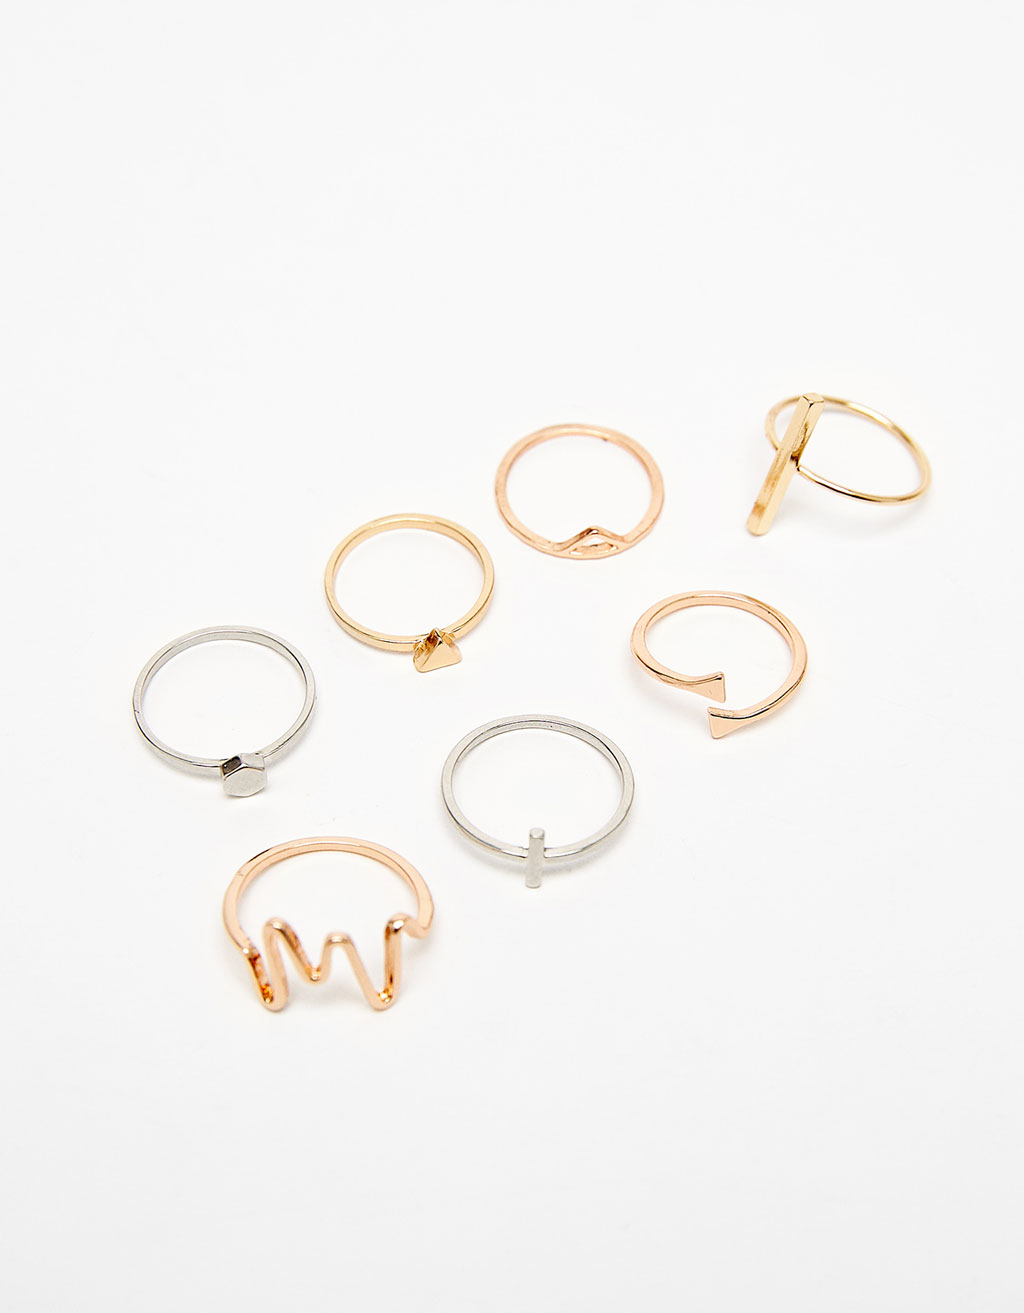 Set of 2 rings with geometric details